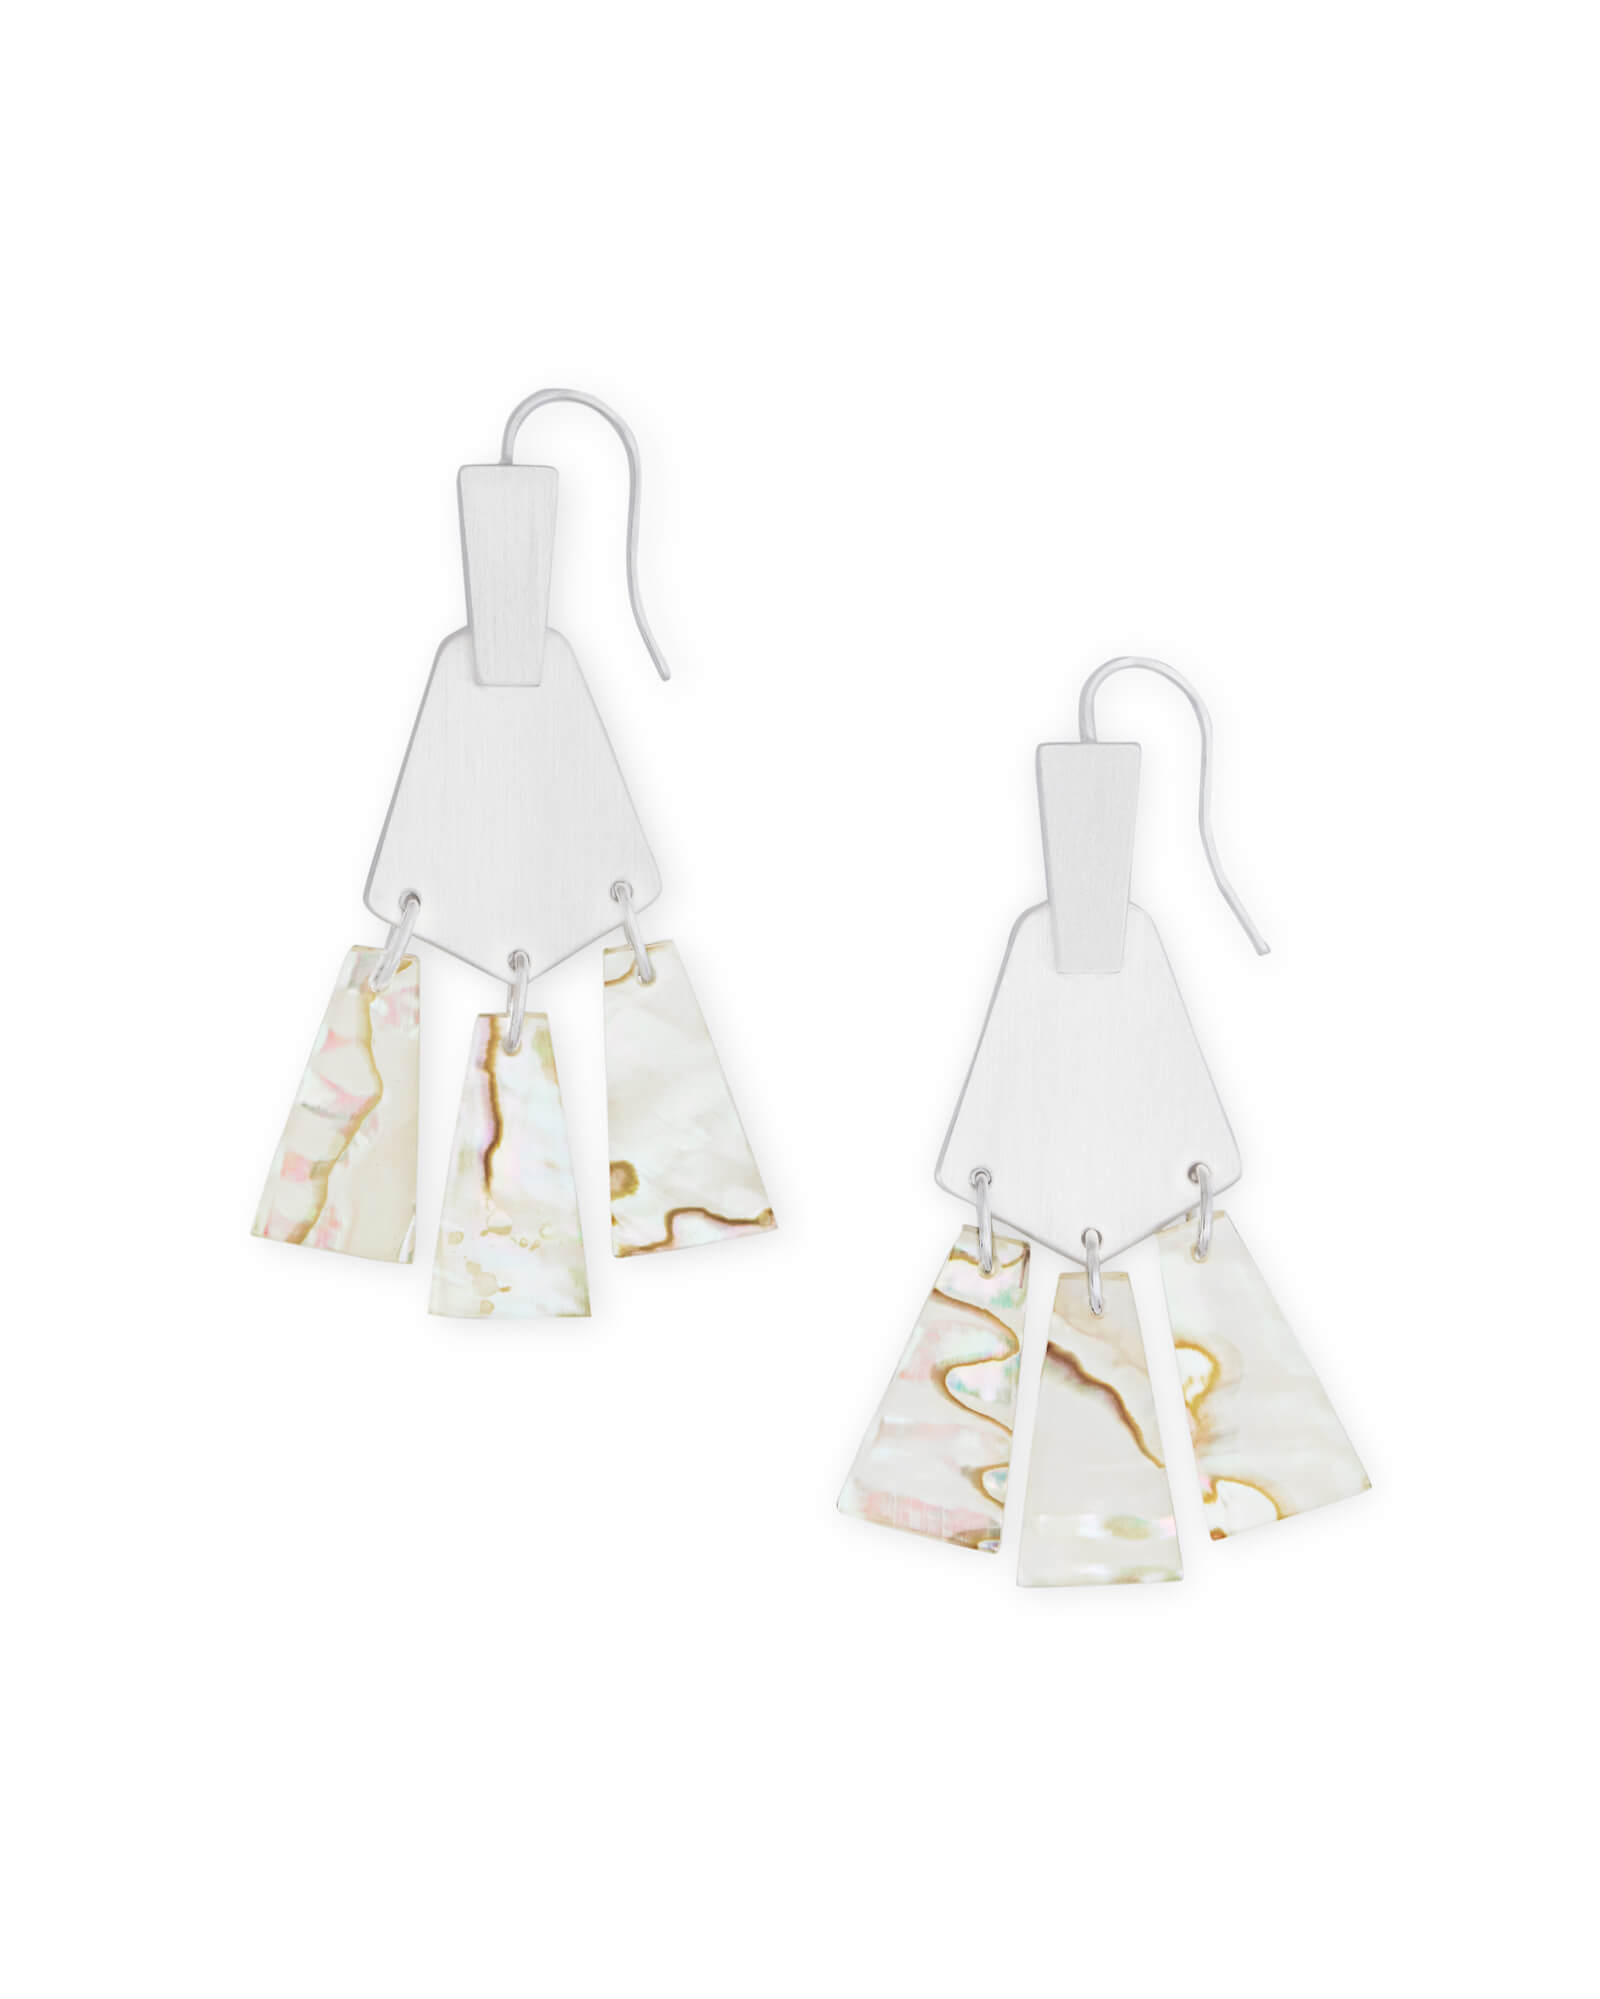 Rechelle Bright Silver Drop Earrings in White Mix